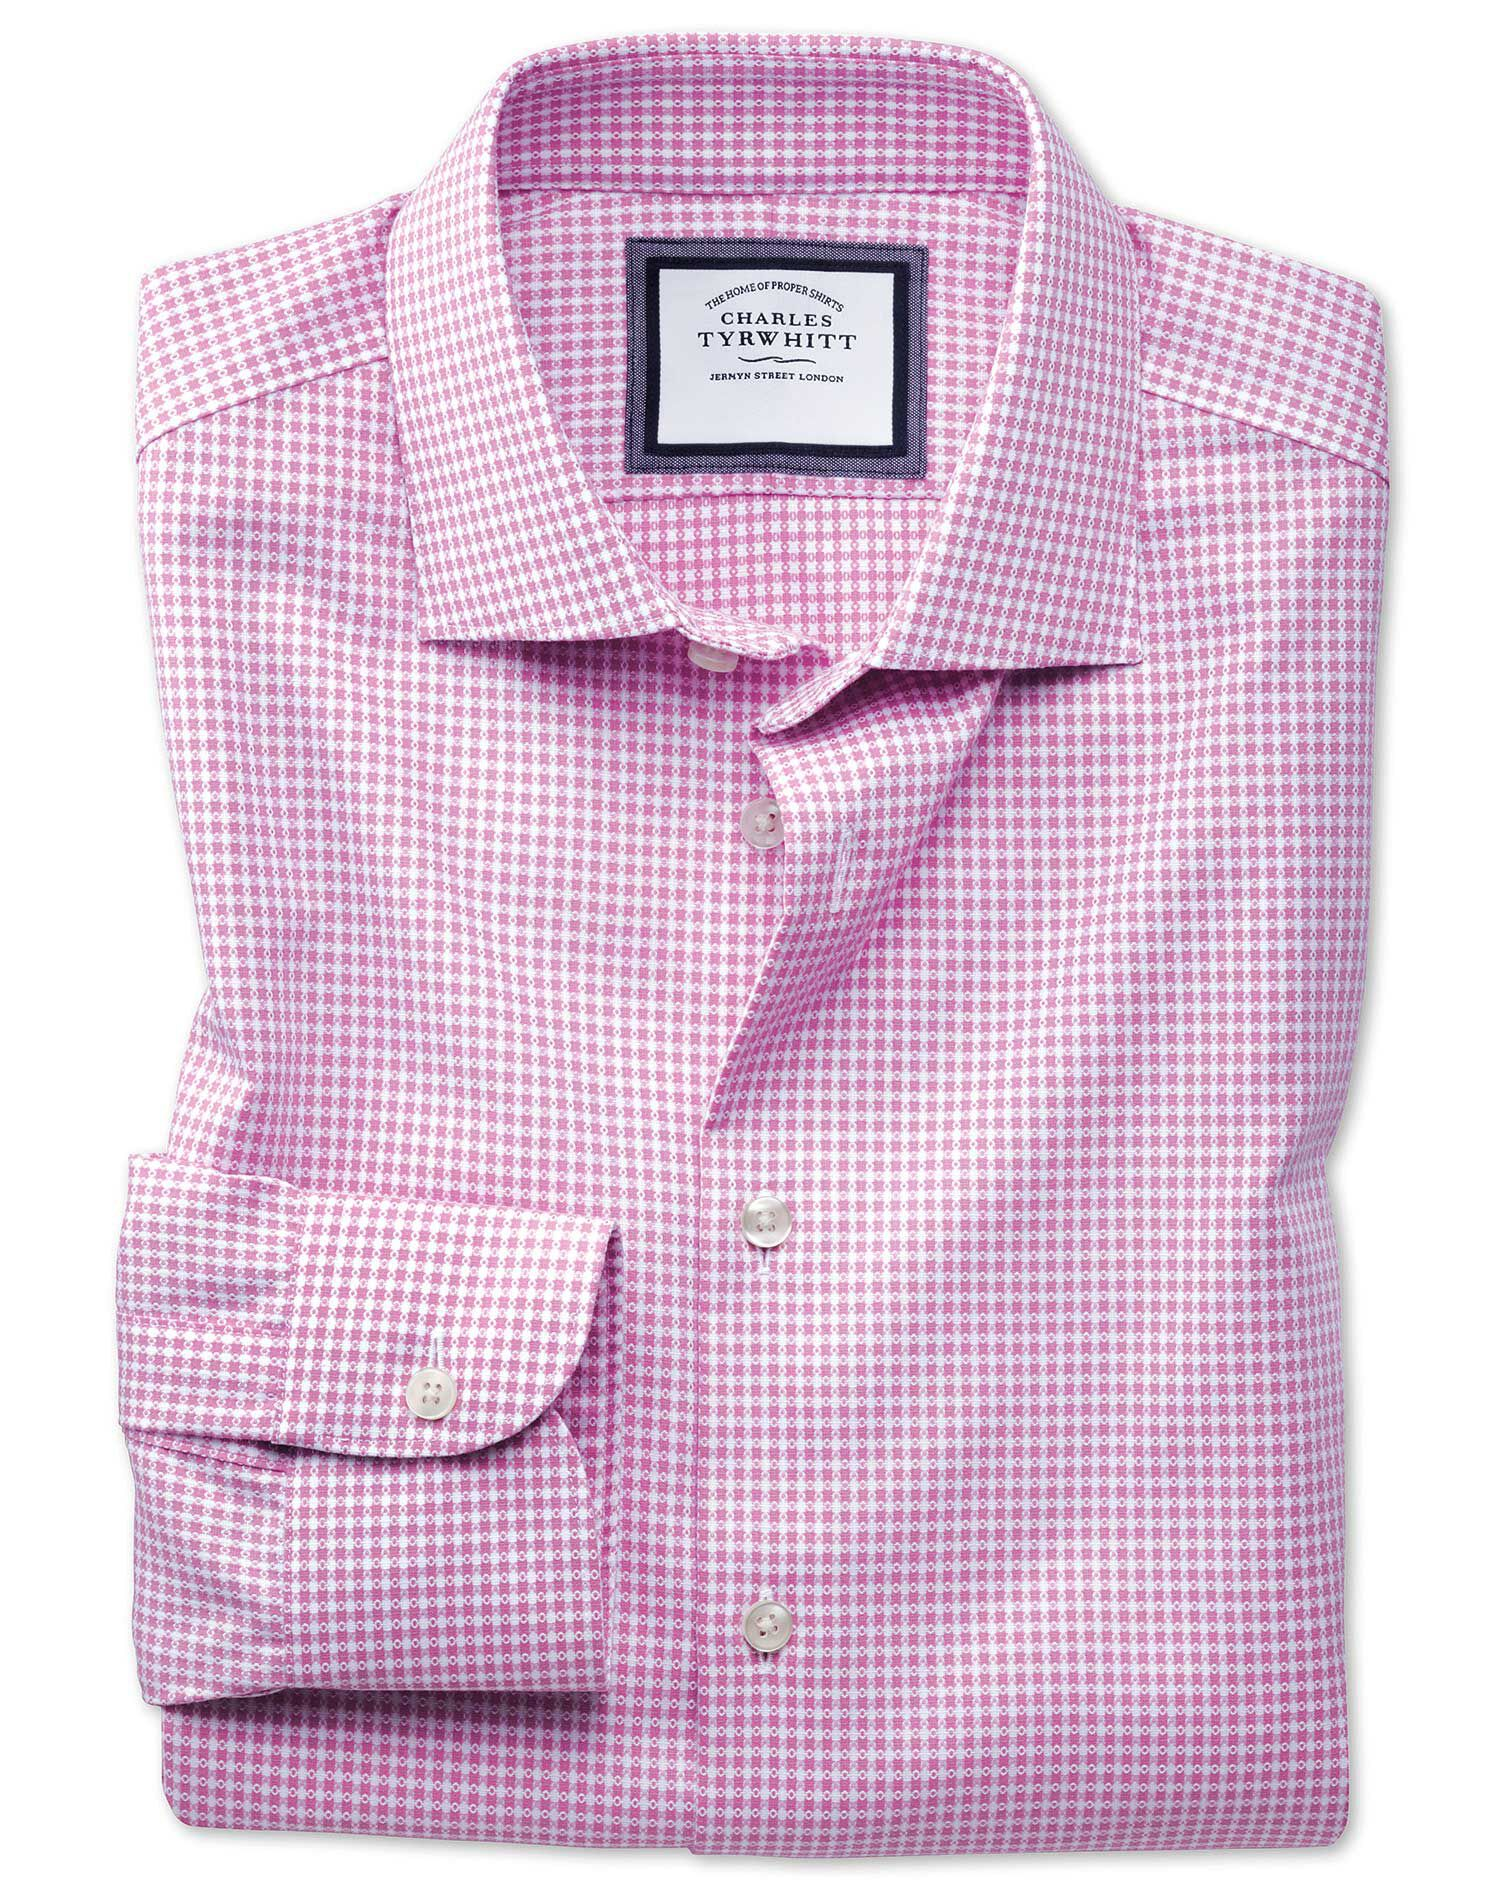 Classic Fit Business Casual Non-Iron Modern Textures Pink and White Cotton Formal Shirt Single Cuff